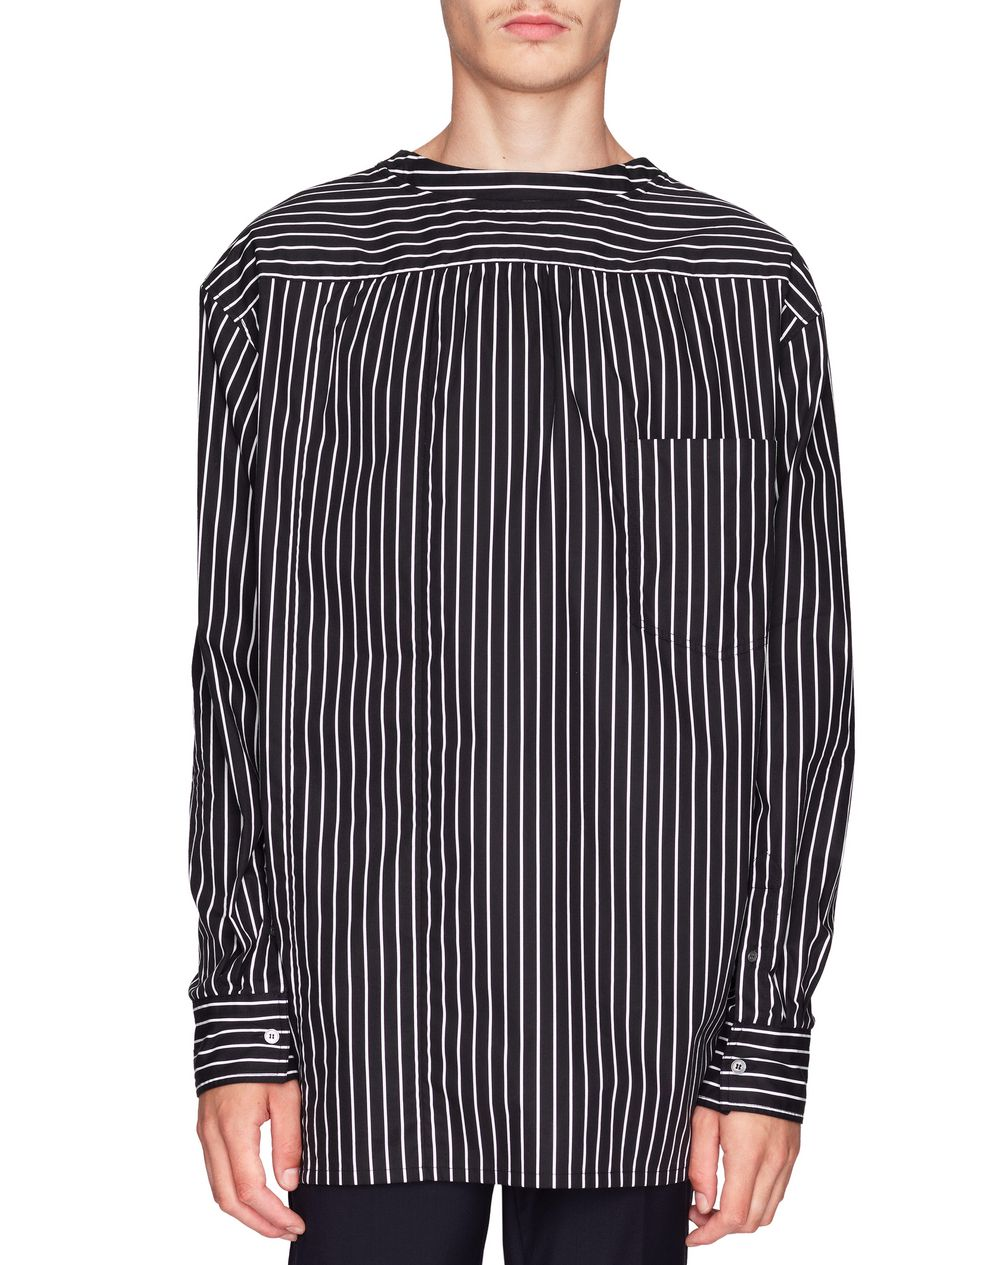 SHIRT-BACK T-SHIRT    - Lanvin